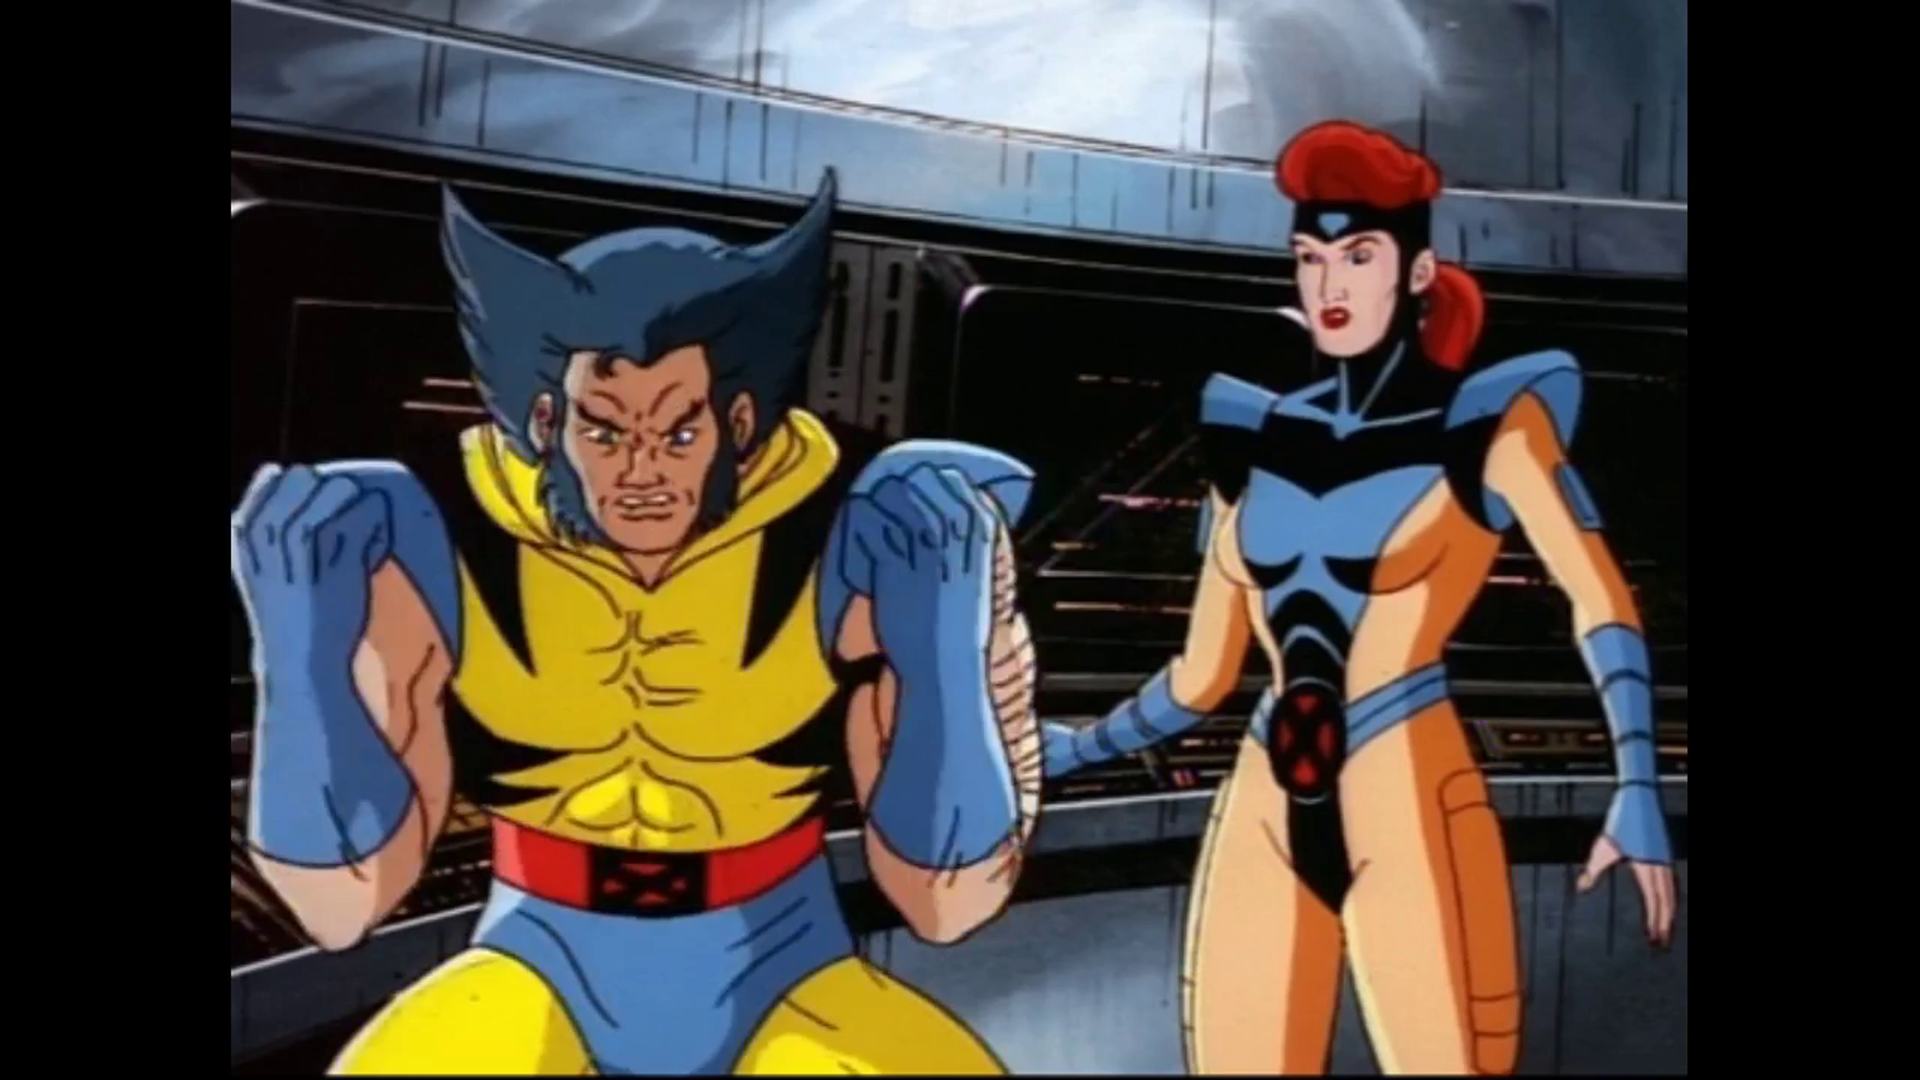 An Enraged Wolverine And Jean Grey In X Men The Animated Series Beauty And The Beast Episode Xmen In 2020 Wolverine And Jean Grey Wolverine And Jean Superhero